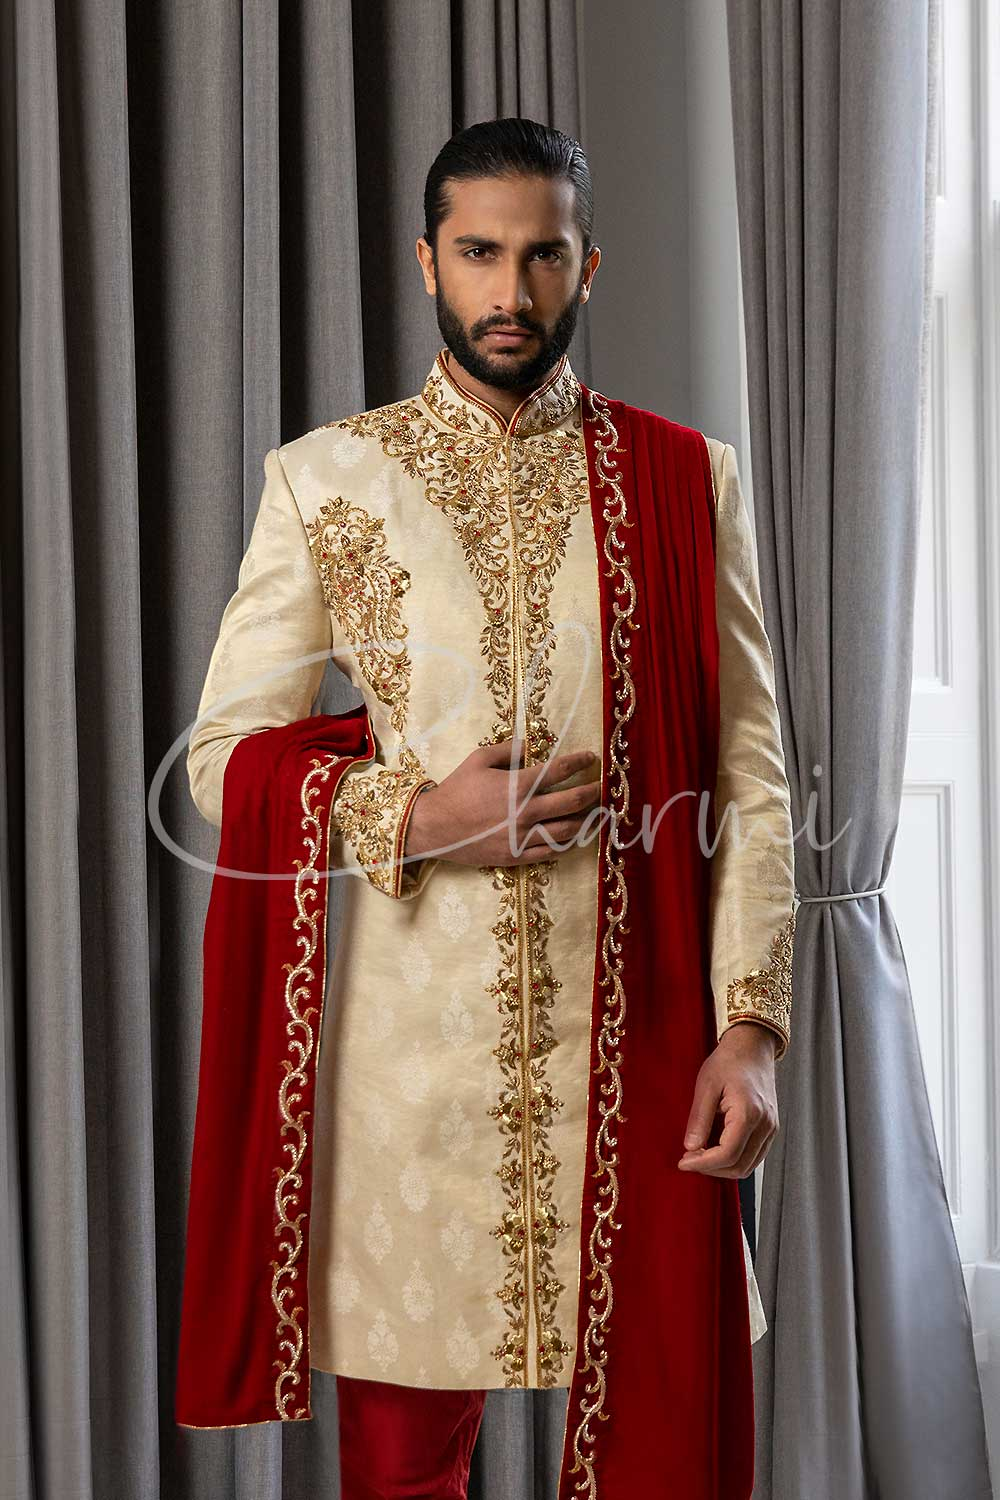 Gold Sherwani with Red Churidar - Asian Groom Outfit